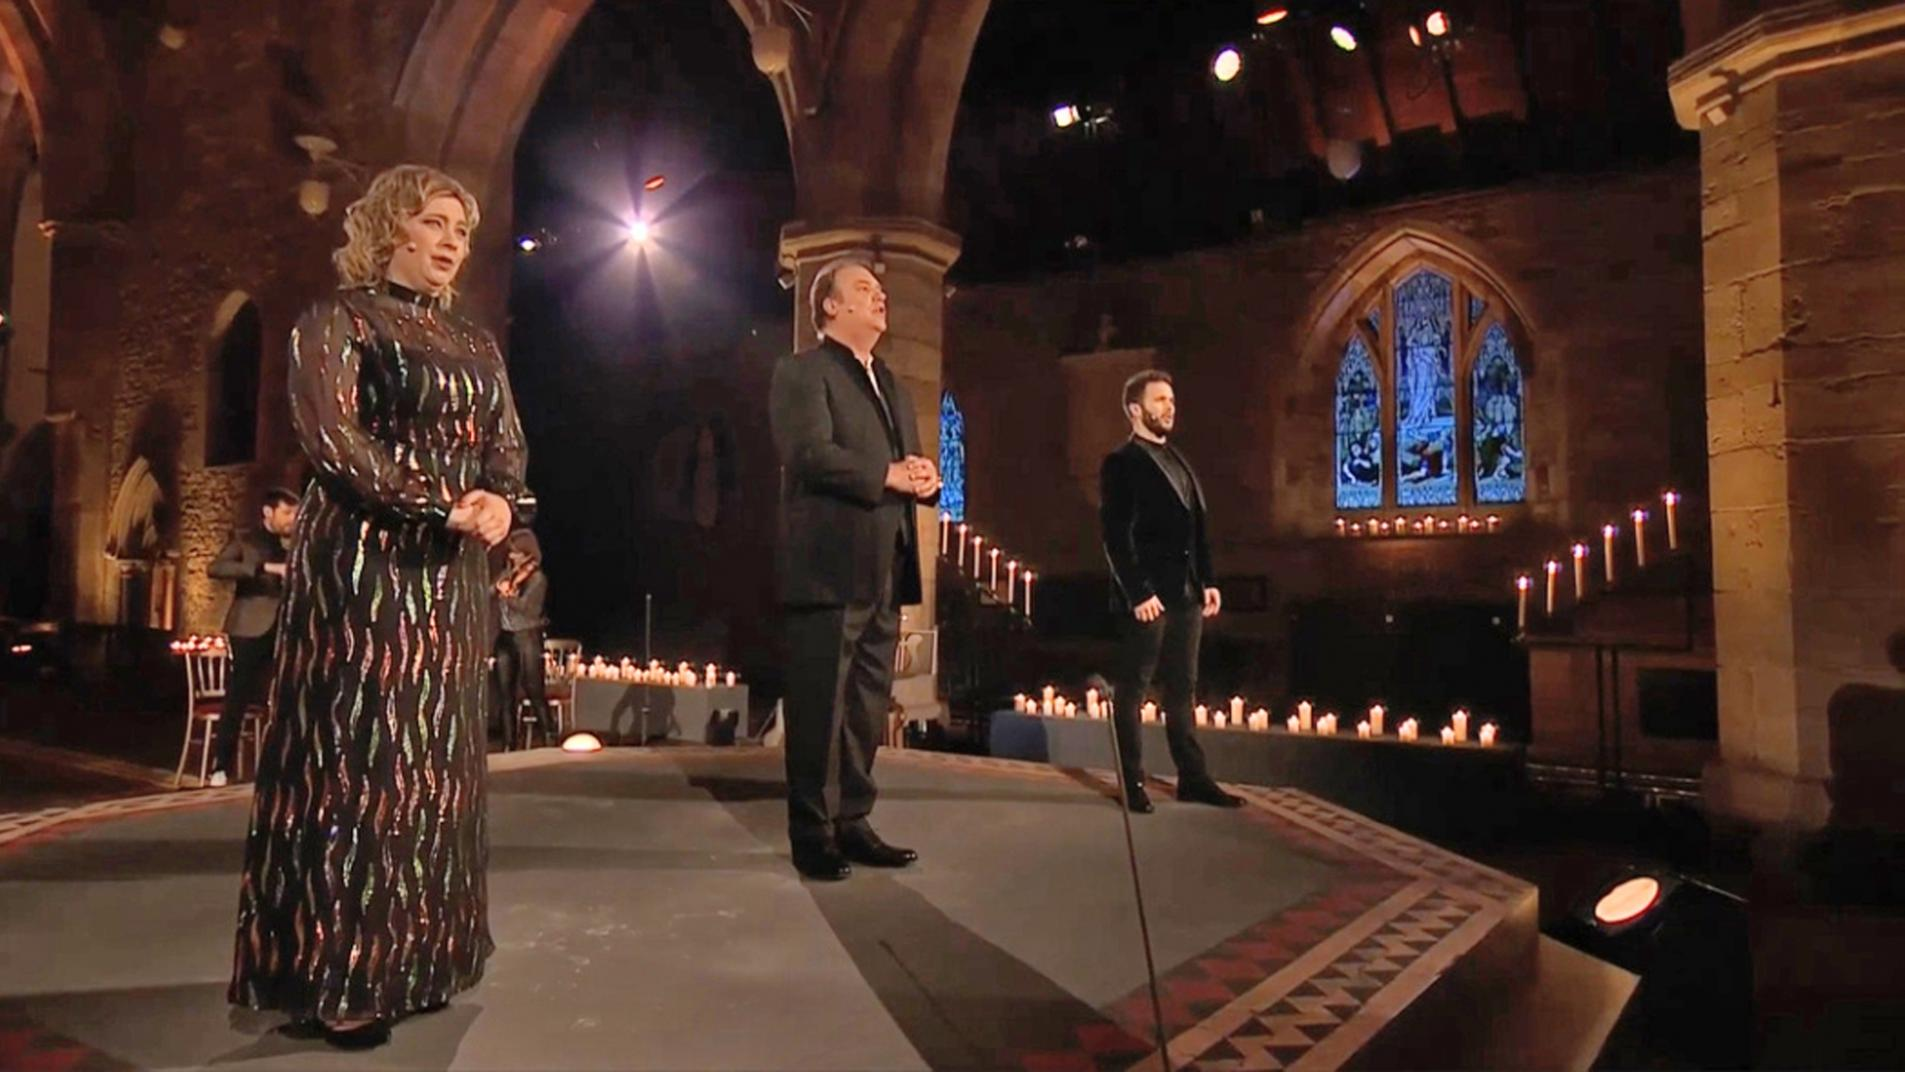 Sir Bryn Terfel concert at Brecon Cathedral copyright The Metropolitan Opera